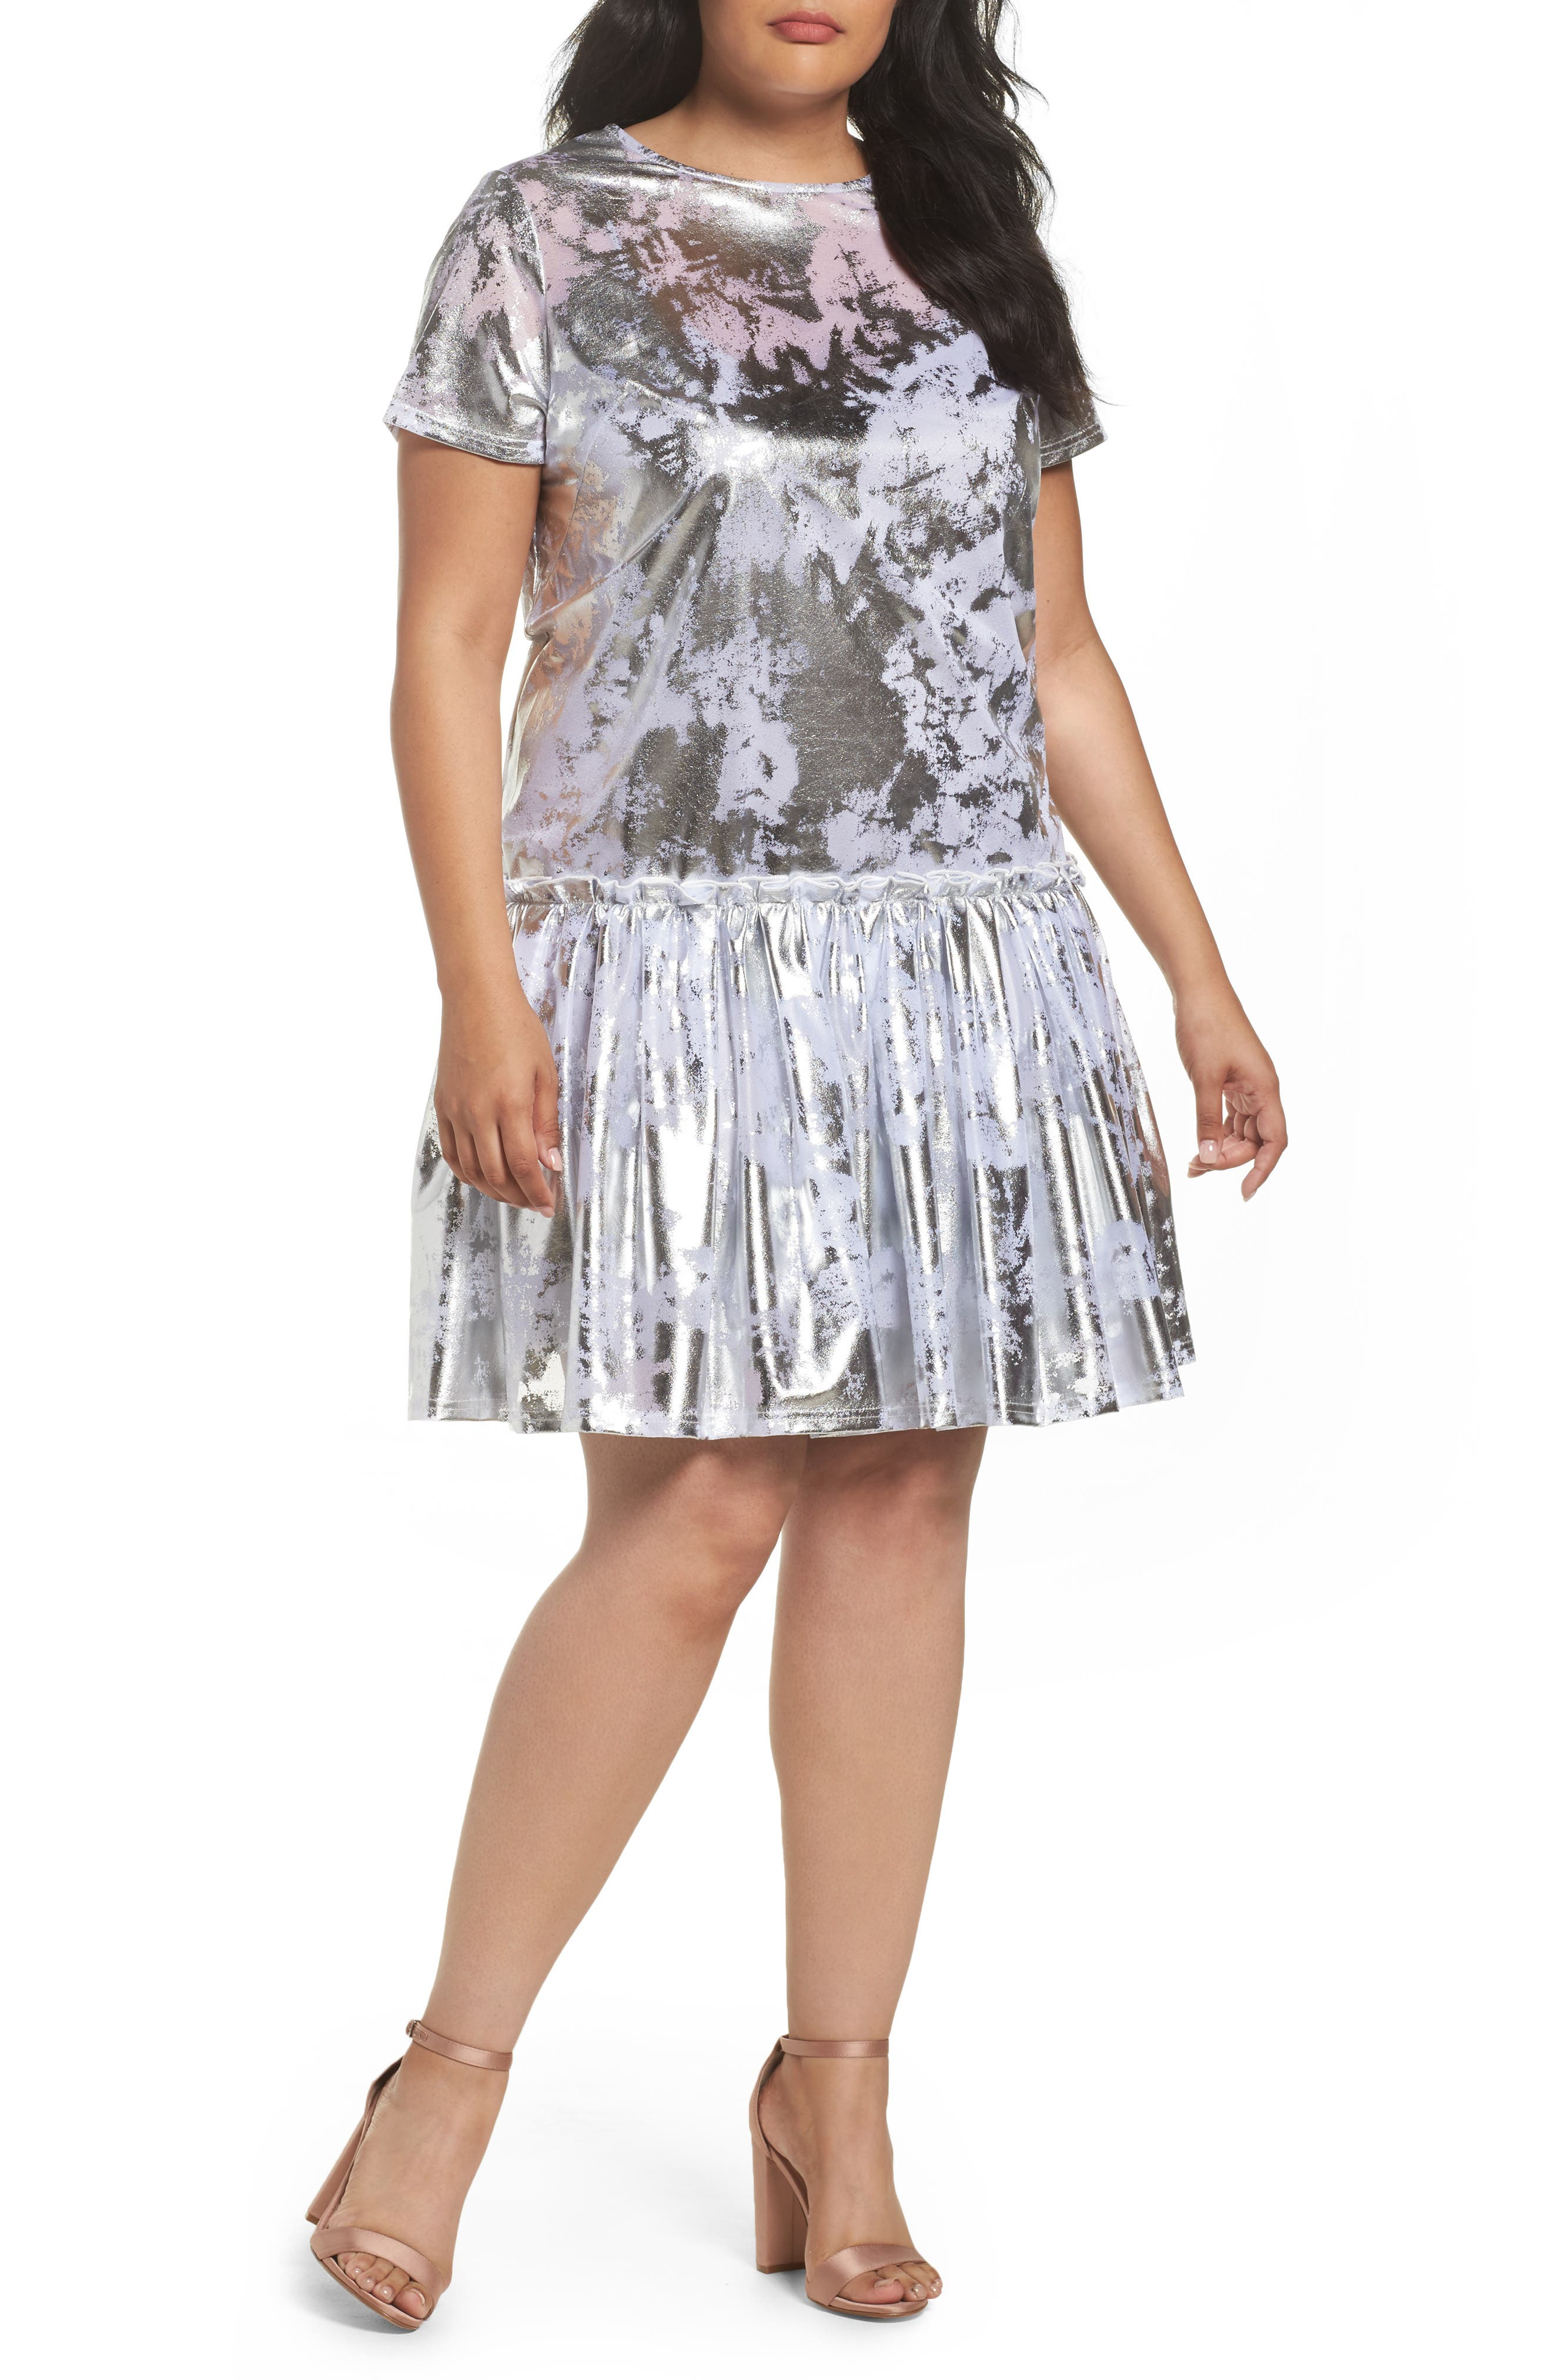 Alternate Image 1 Selected - LOST INK Metallic Swing Dress (Plus Size)